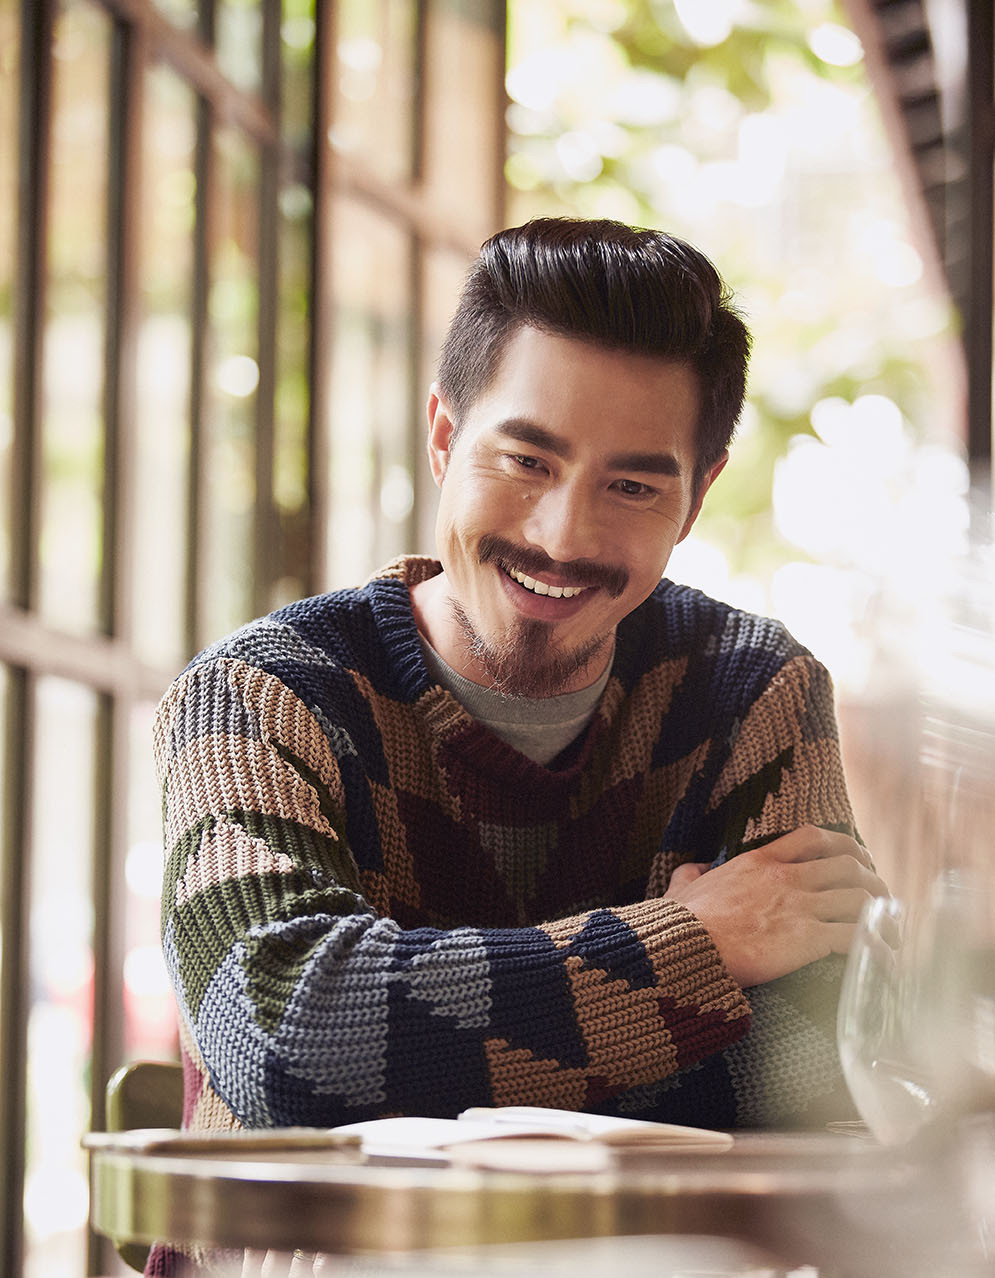 03 - Pierre Png, actor Starred in Crazy Rich Asians